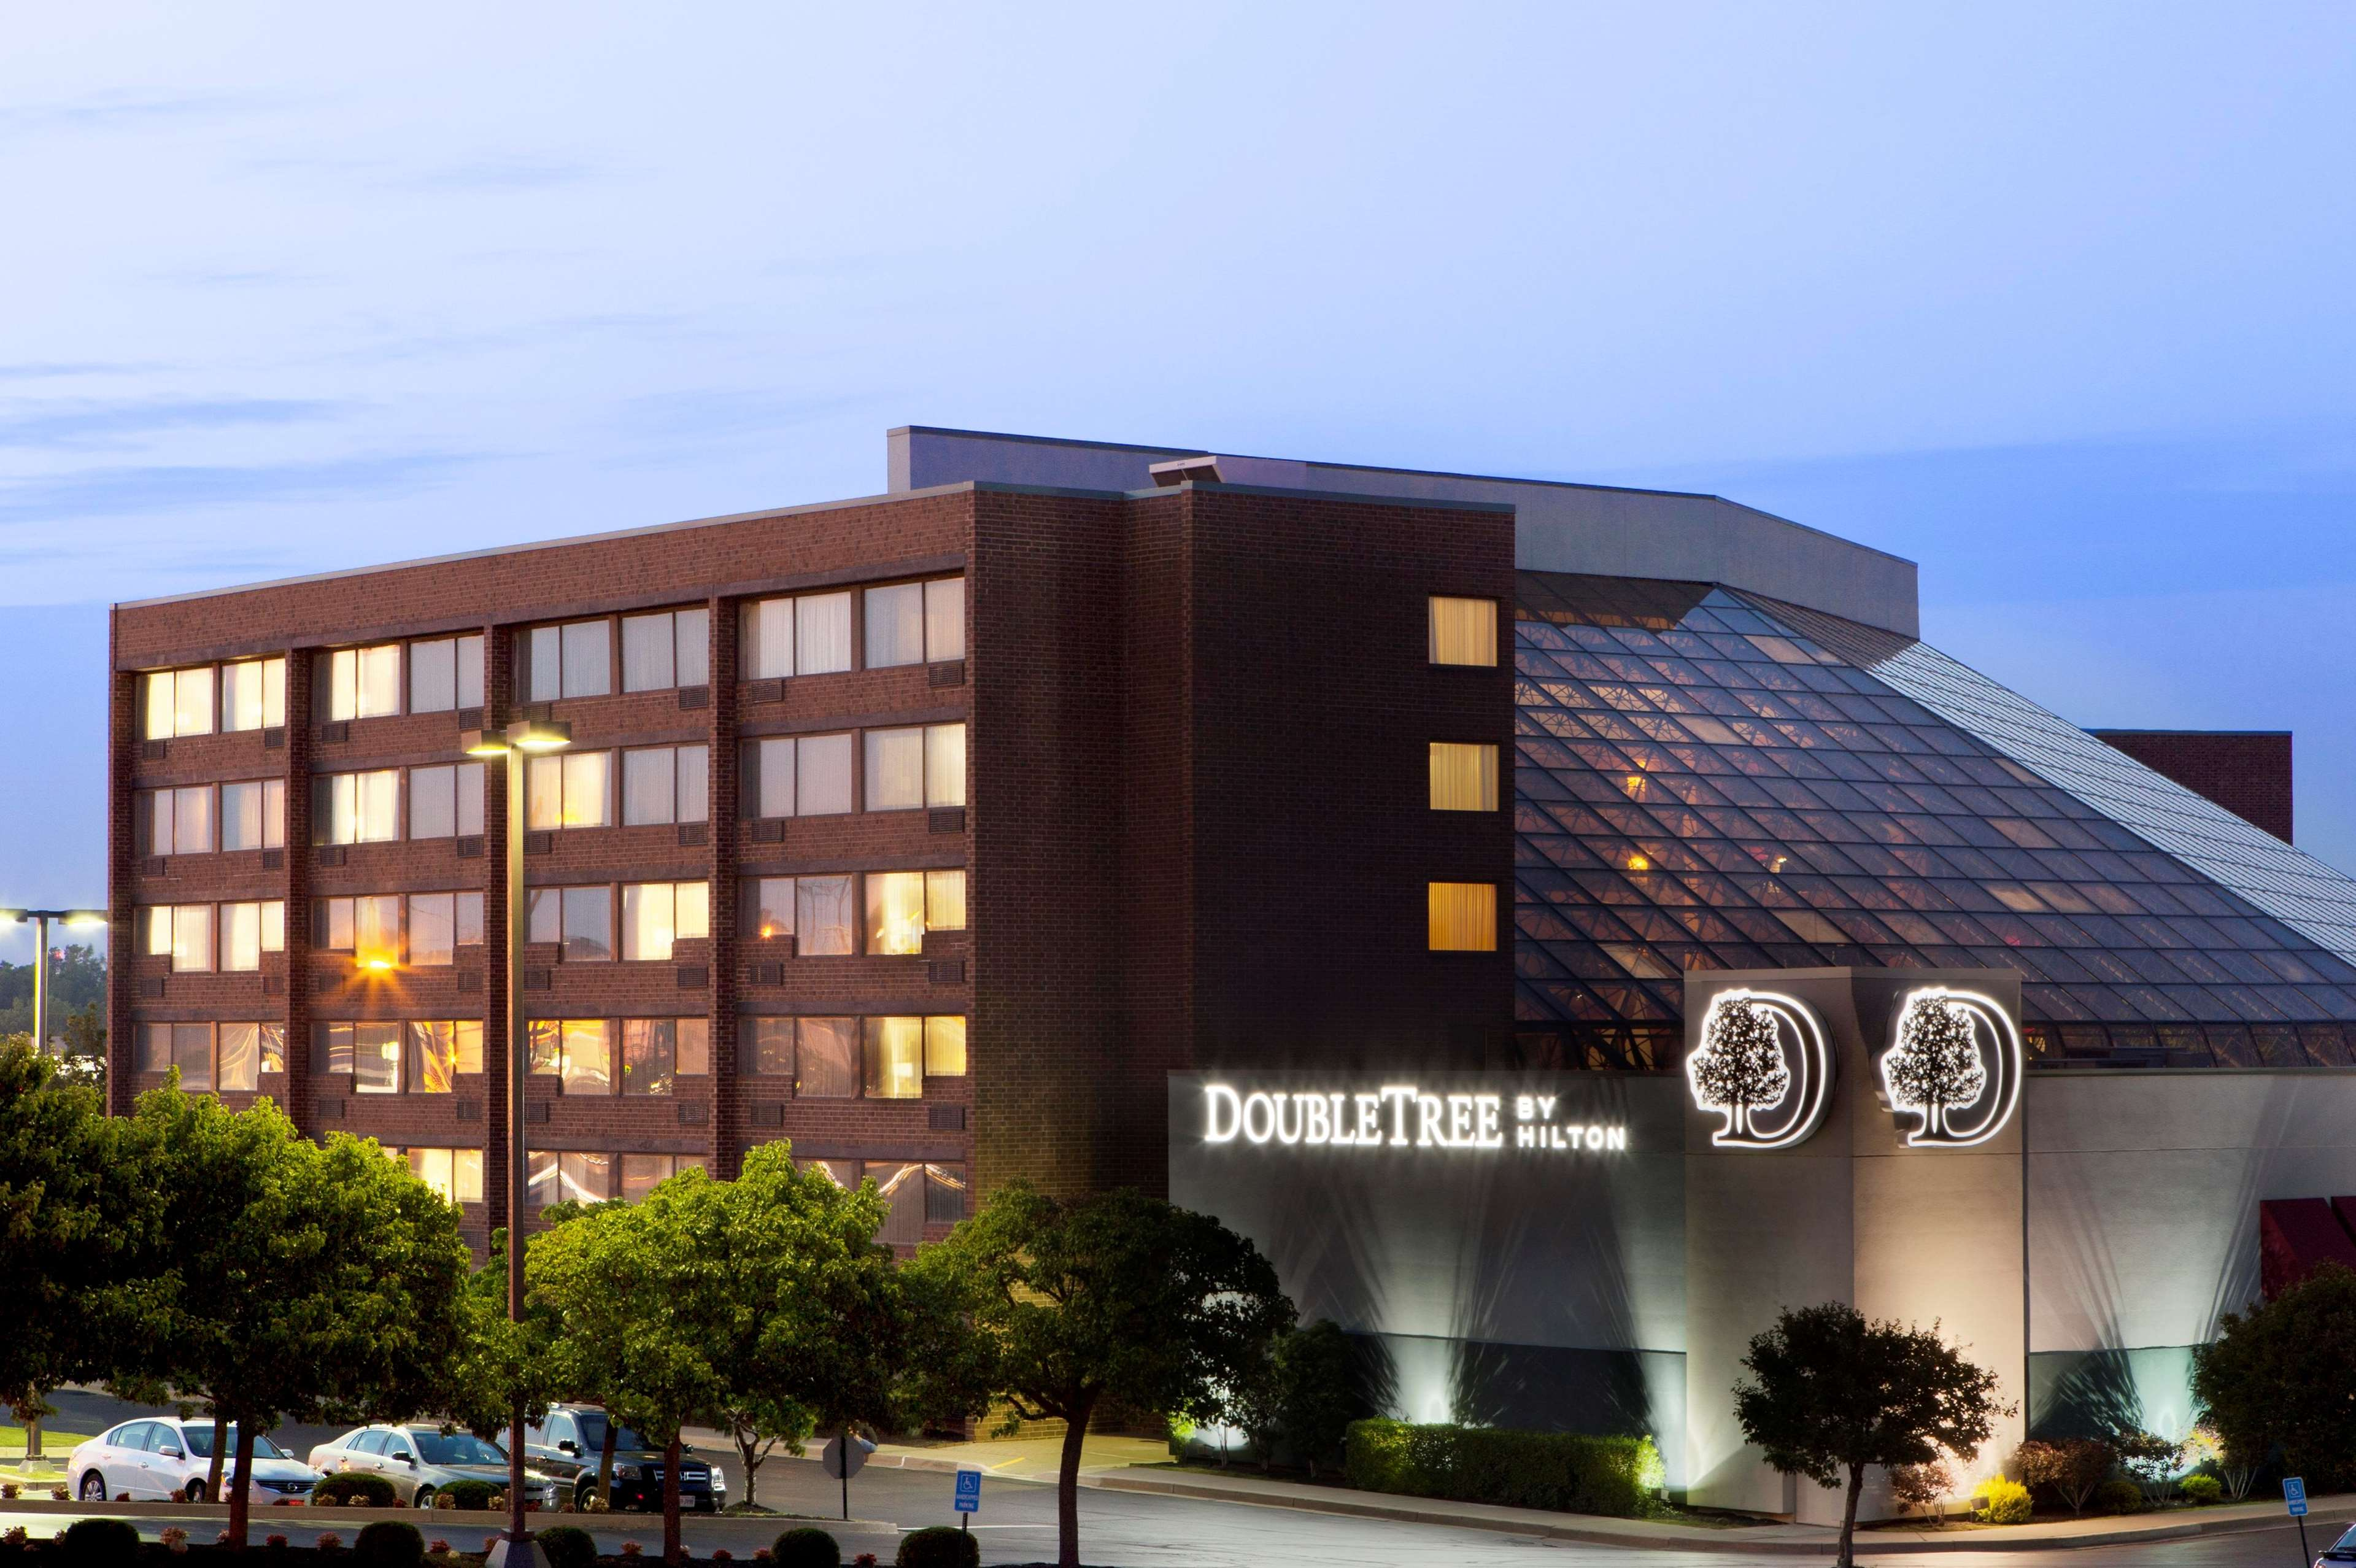 Doubletree coupons discounts